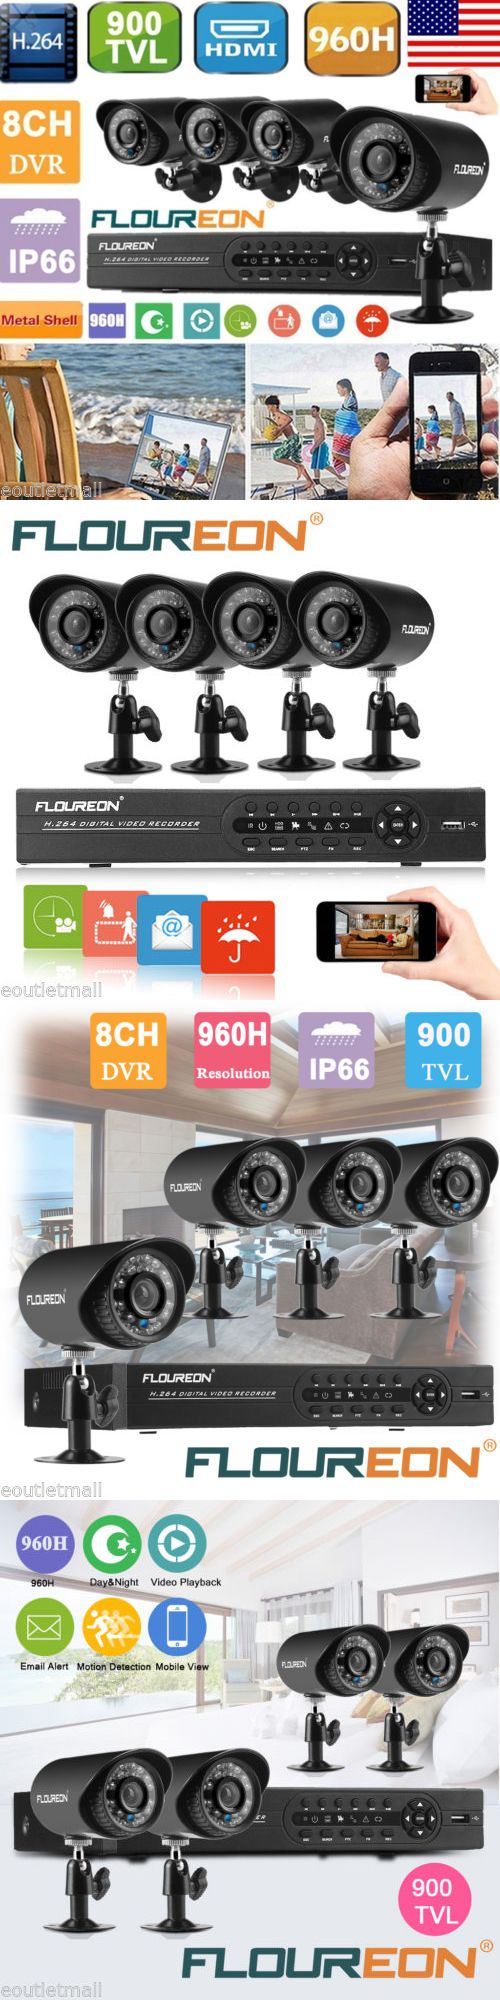 Surveillance Security Systems: Floureon 8Ch 960H Hdmi Dvr 900Tvl Outdoor Video Cctv Security Camera Kit System BUY IT NOW ONLY: $83.99